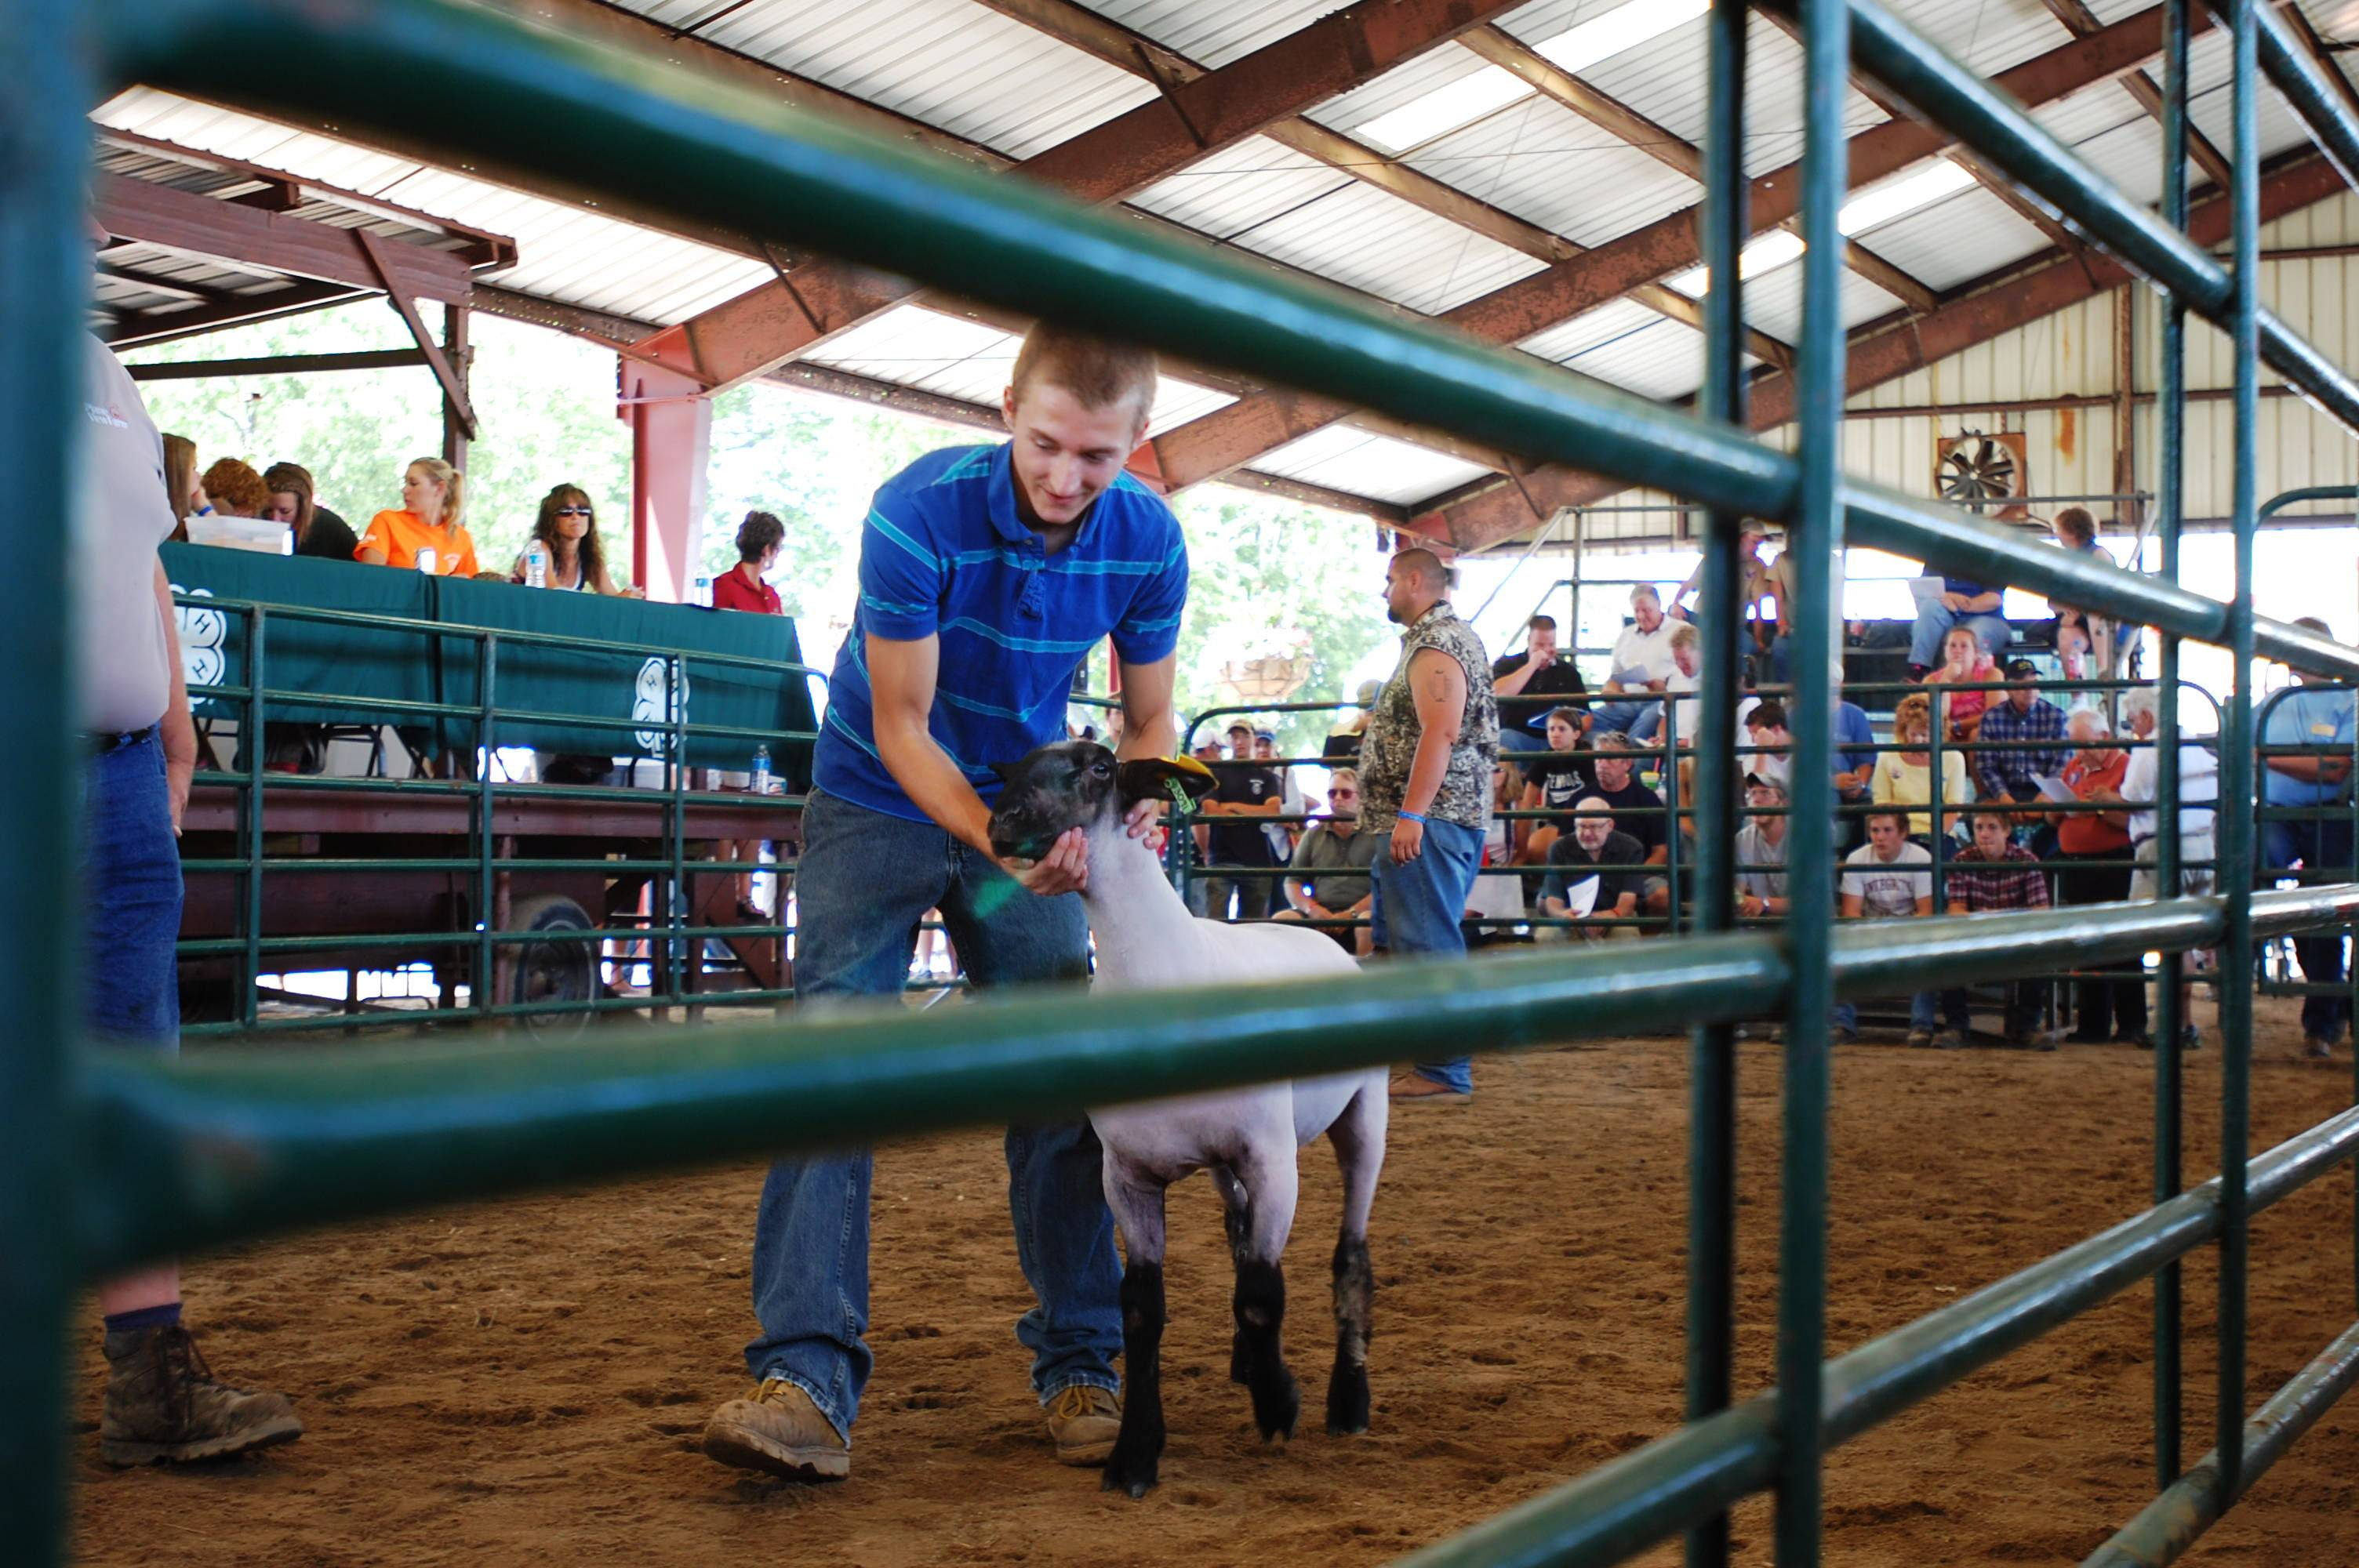 Bryce Laylor, 17, of Hebron shows his sheep in the 4-H livestock auction on Saturday, August 3 at the McHenry County Fair in Woodstock.